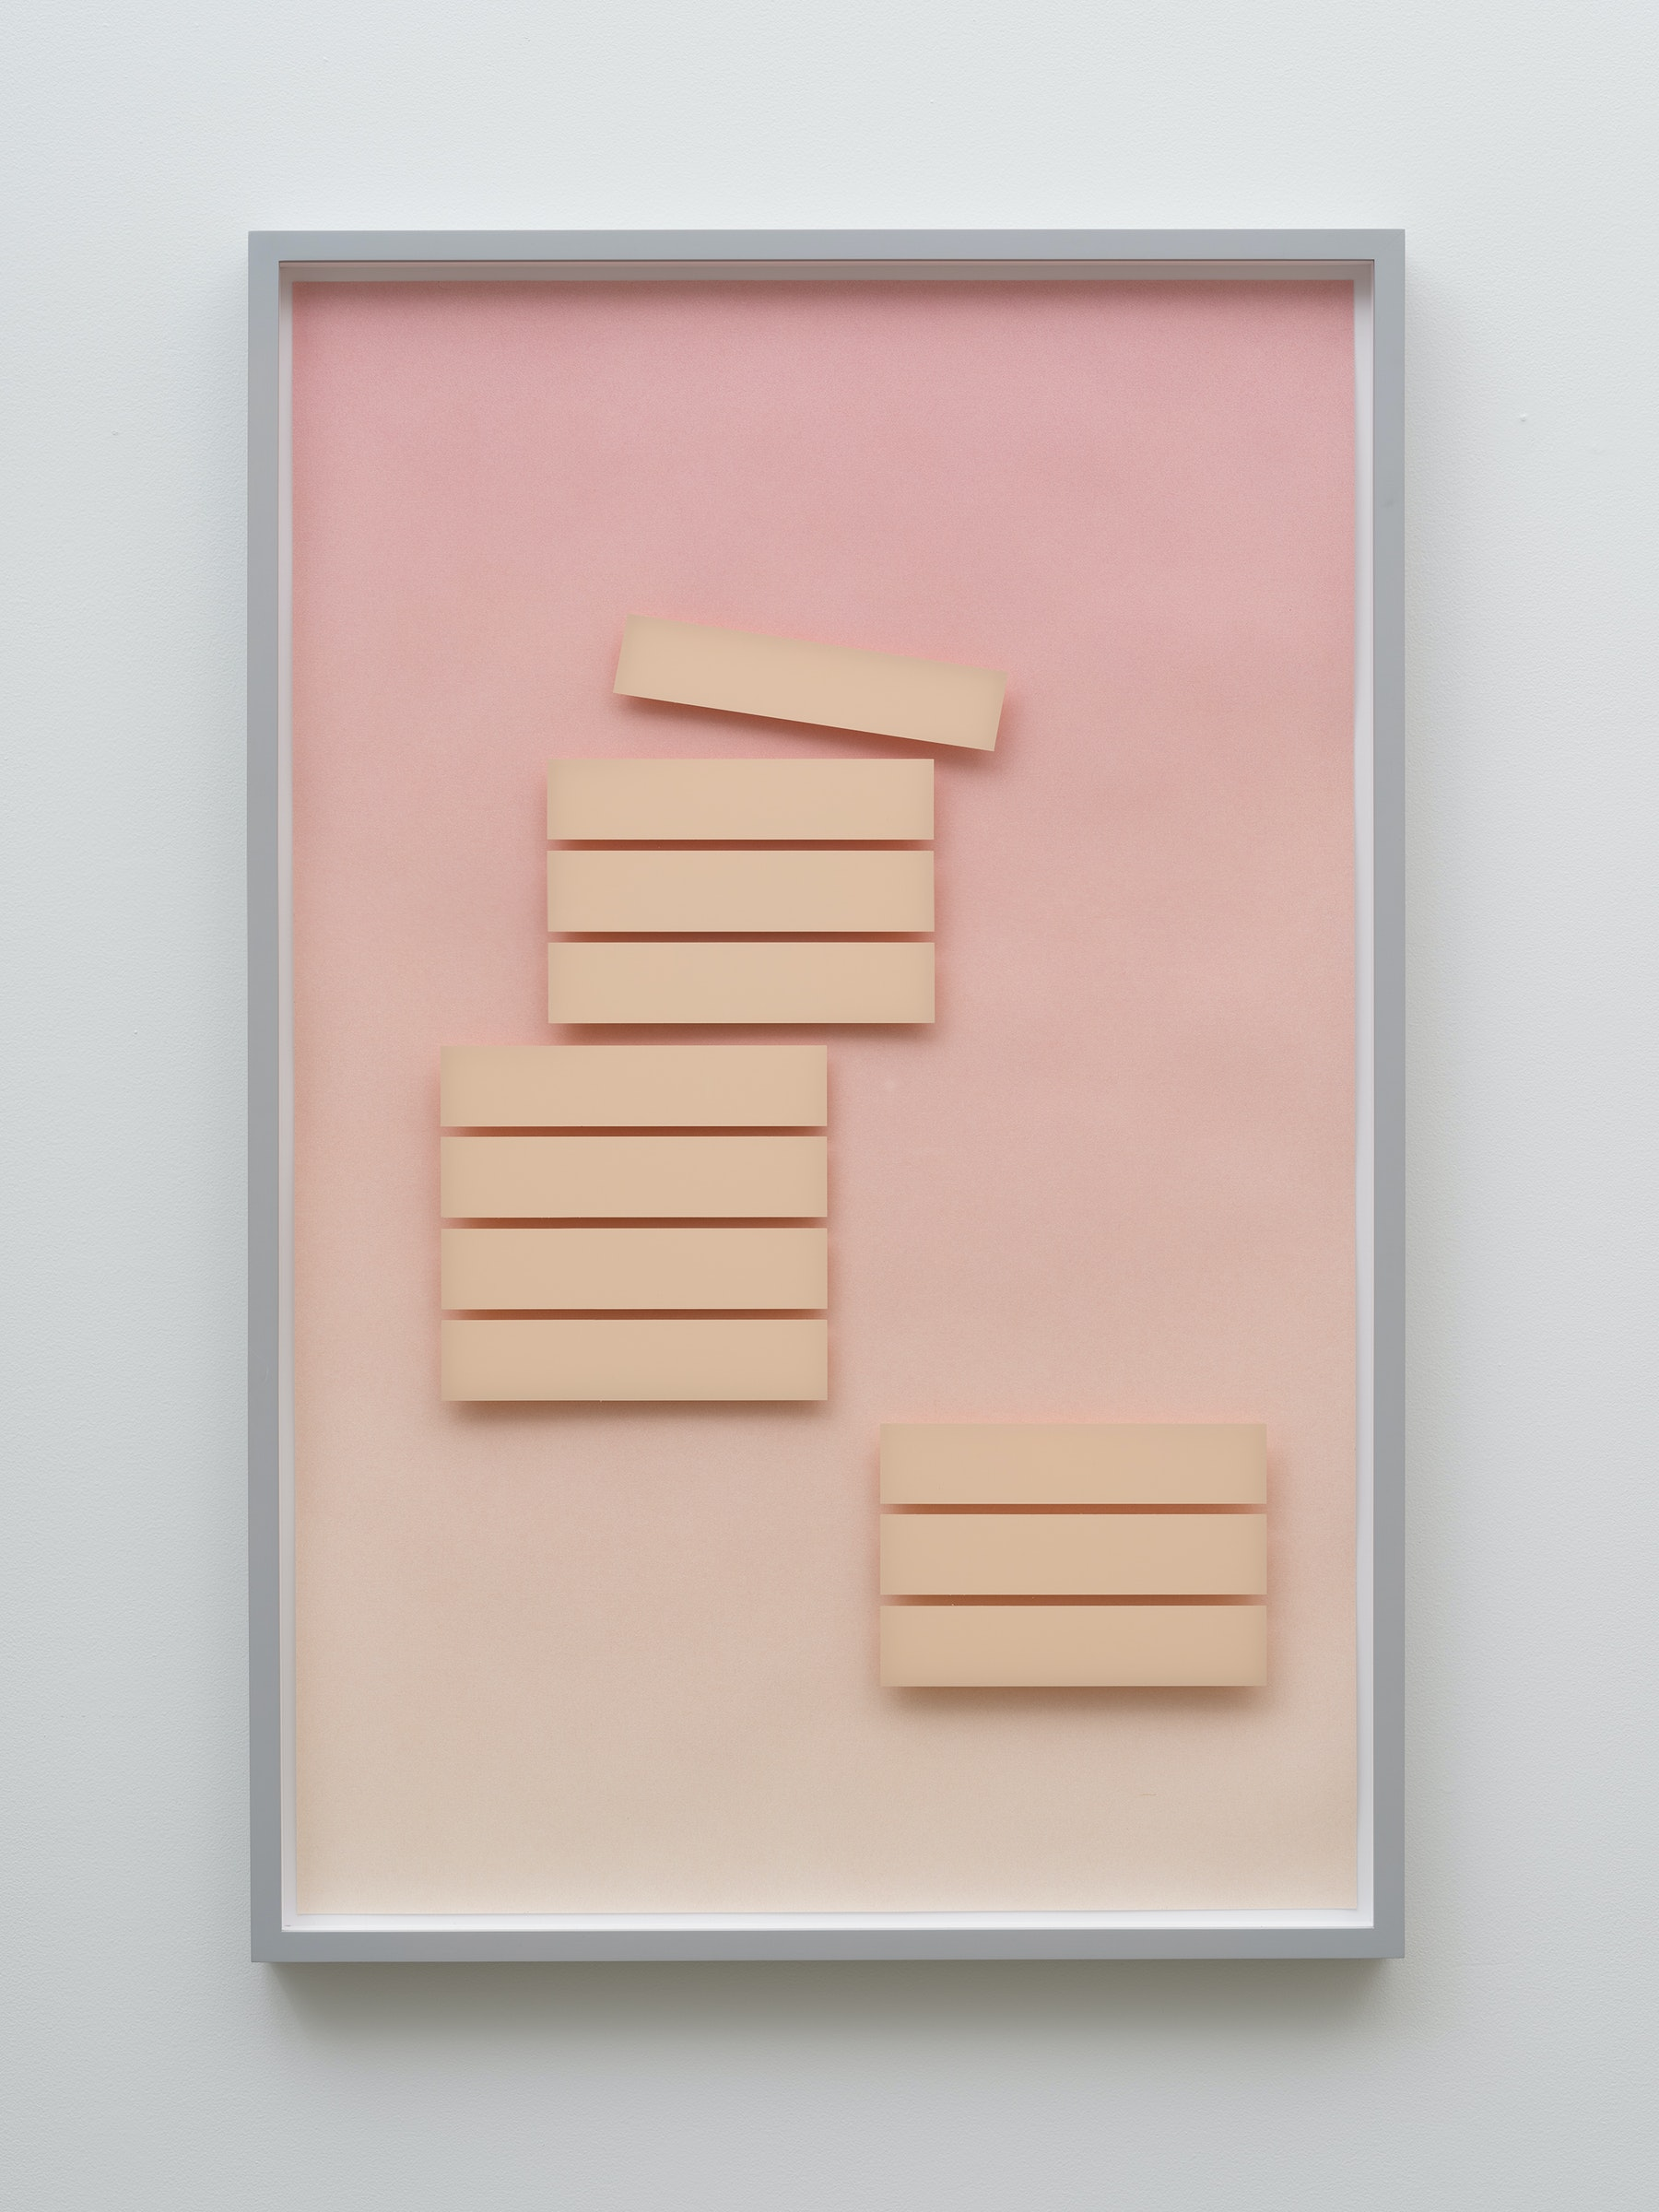 "Krista Buecking ""MATTERS OF FACT (The 4-Hour Workweek),"" 2016 Colored pencil on paper, acrylic on Plexiglas 41 x 27"" [HxW] (104.14 x 68.58 cm); 42 x 28 x 2"" [HxWxD] (106.68 x 71.12 x 5.08 cm) framed Inventory #WS1035 Photo credit: Jeff Mclane"